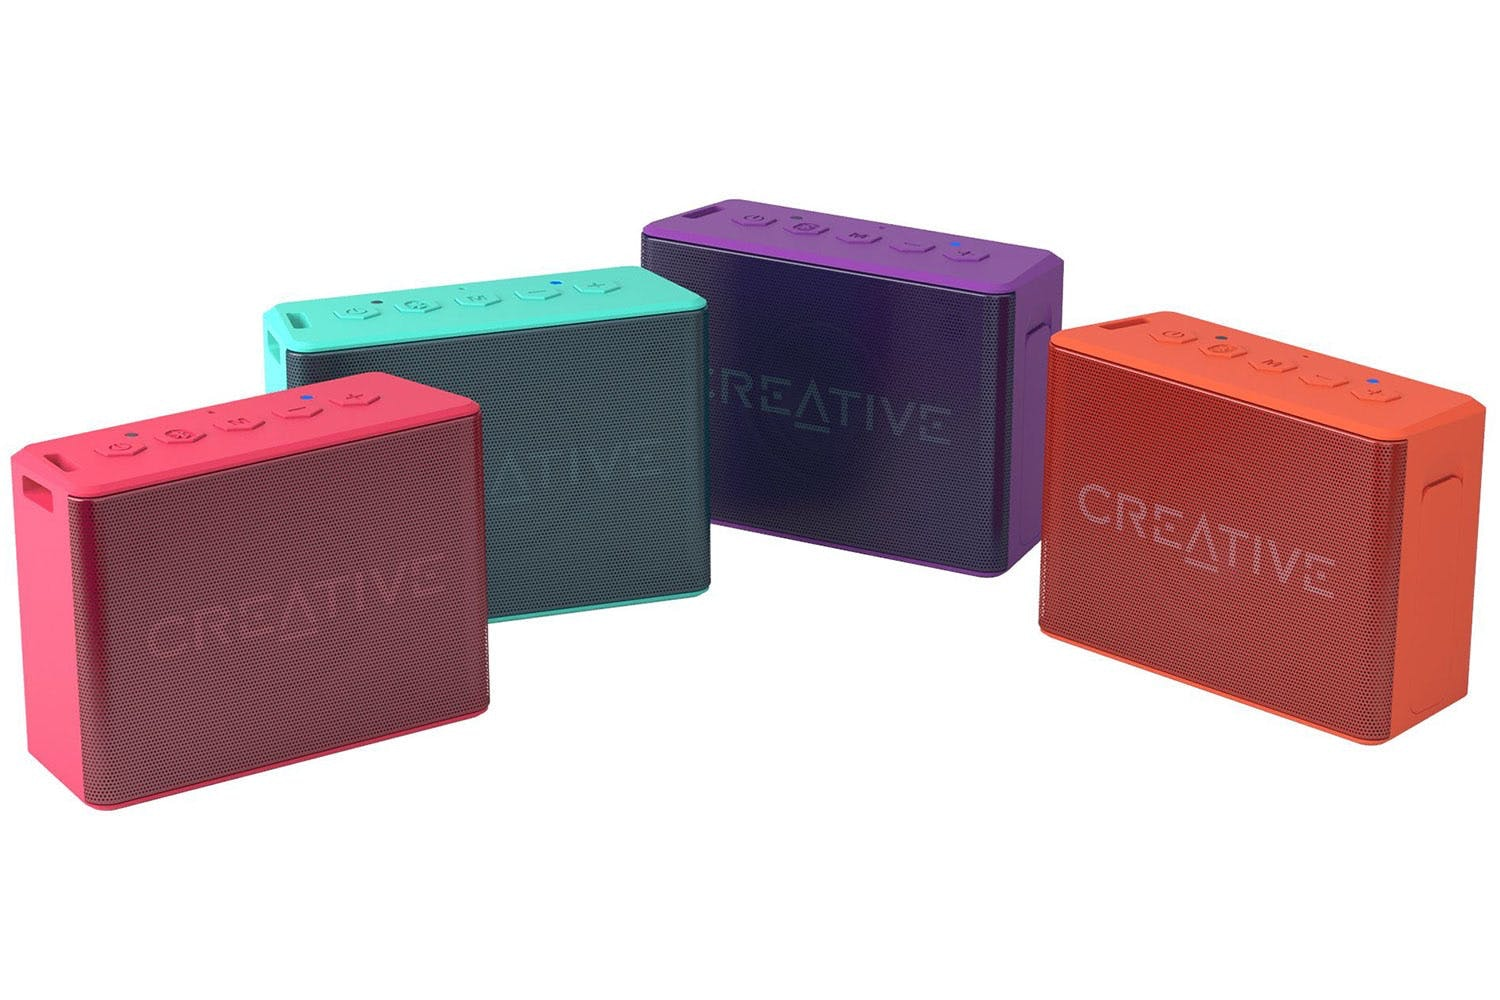 Creative MUVO 2C Bluetooth Speaker | Pink